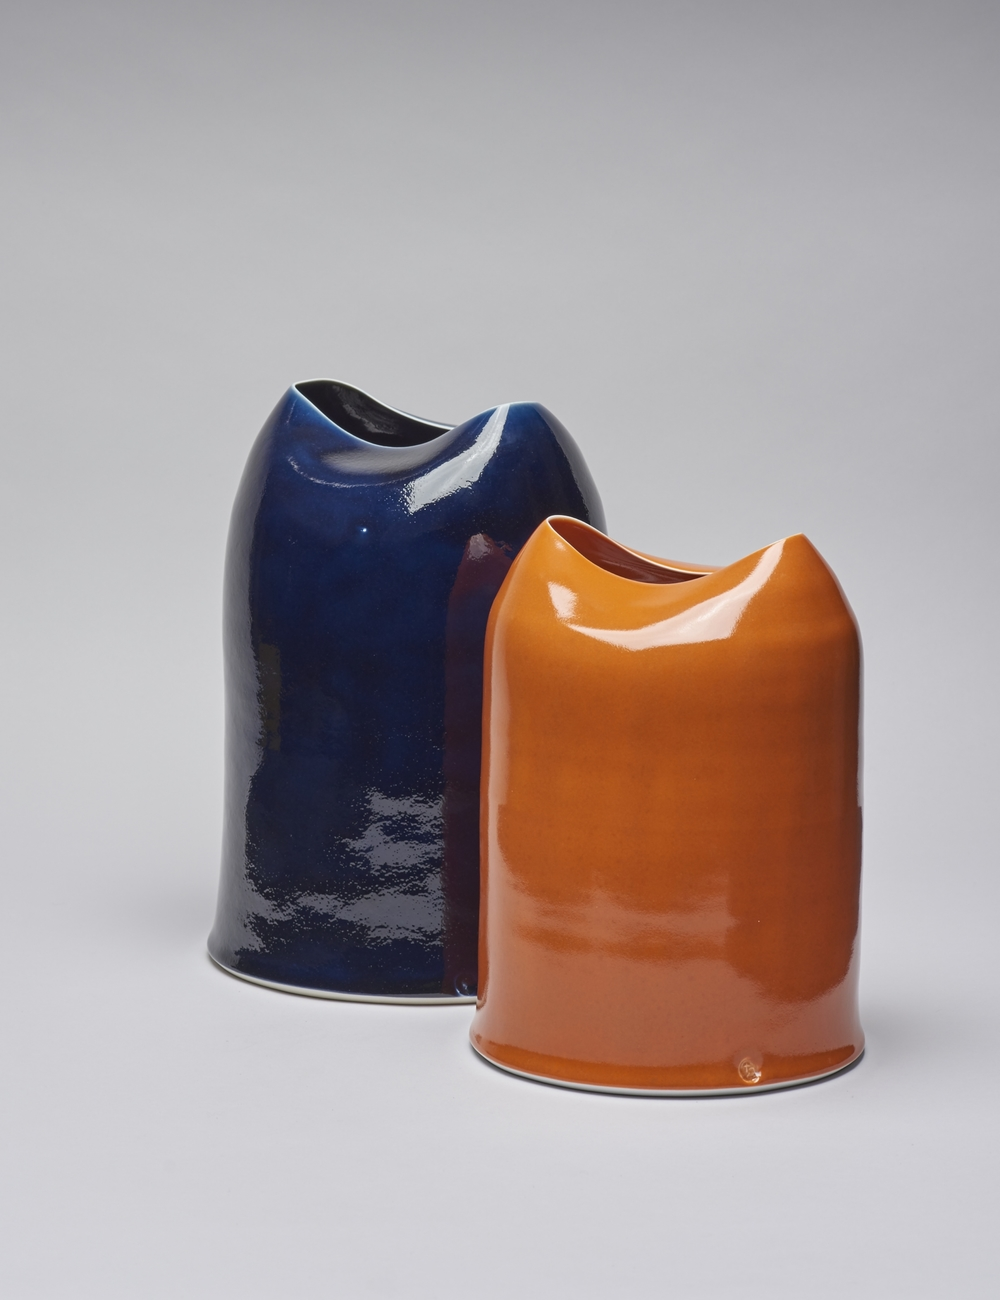 Midnight and Orange Glow Vessels